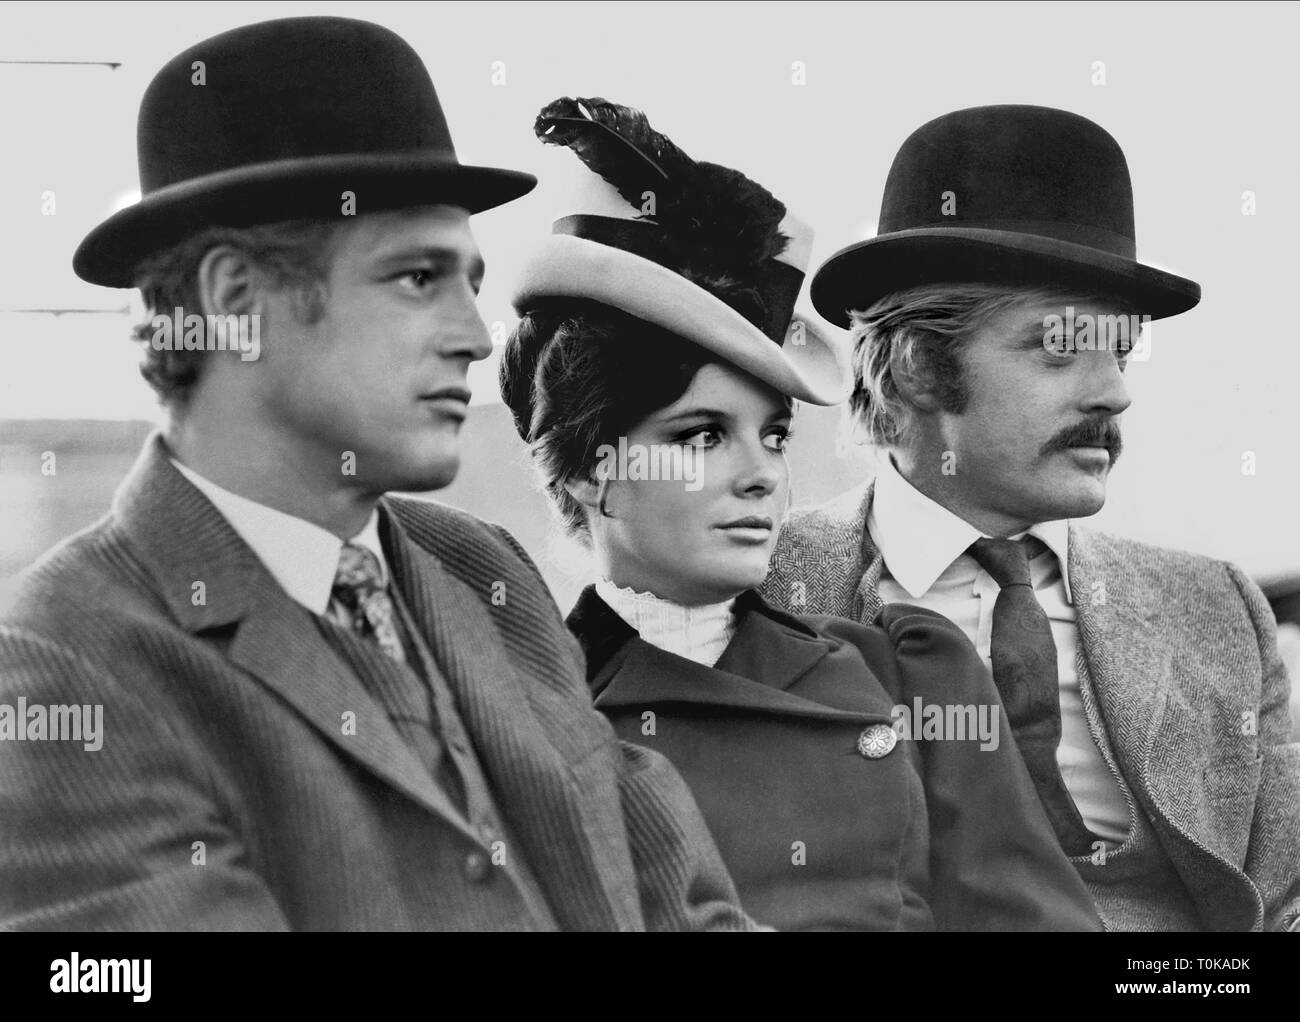 PAUL NEWMAN, KATHARINE ROSS, ROBERT REDFORD, BUTCH CASSIDY AND THE SUNDANCE KID, 1969 - Stock Image